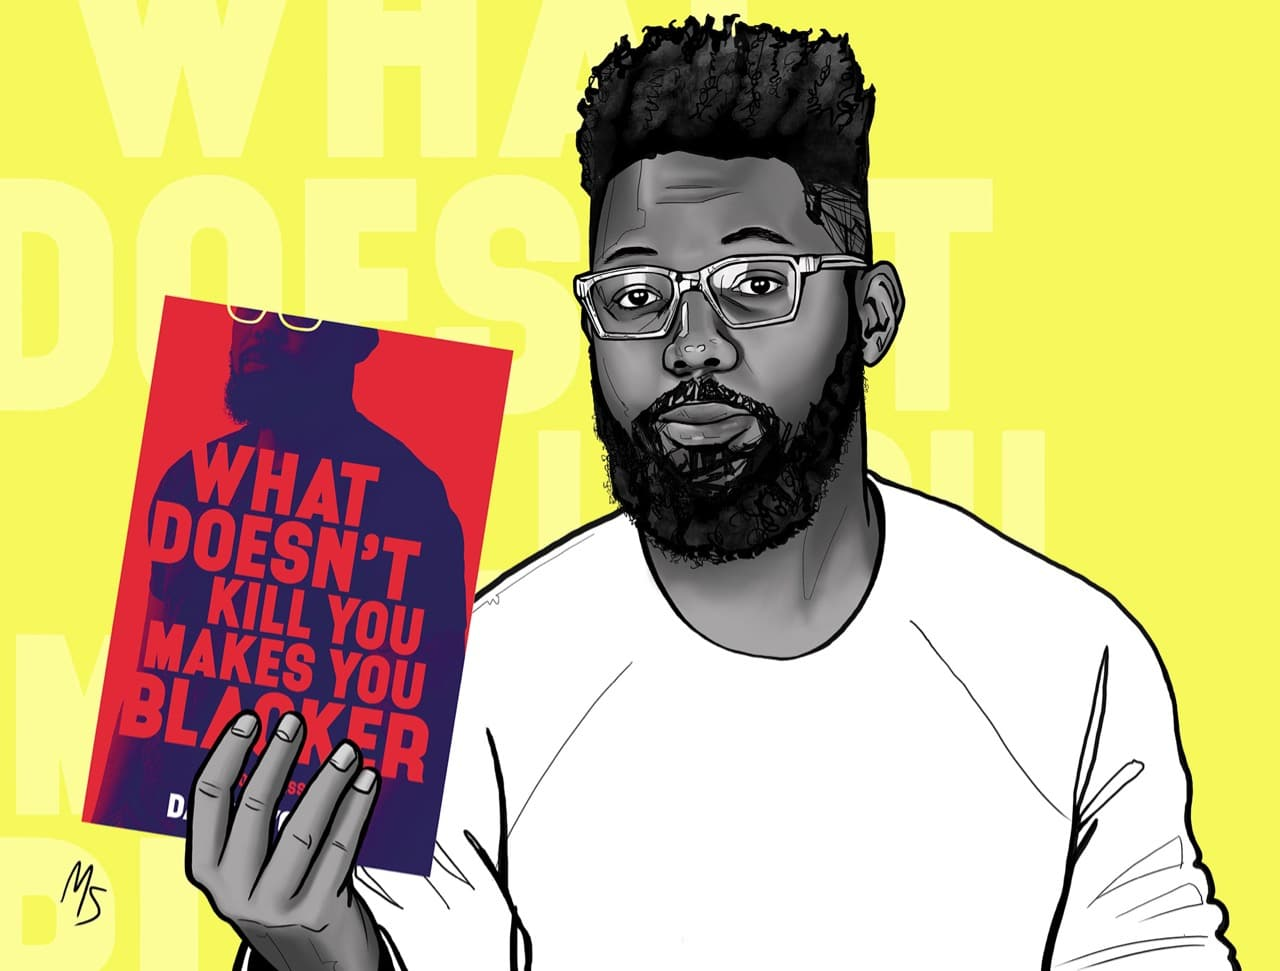 What Doesn't Kill You Makes You Blacker by Damon Young.